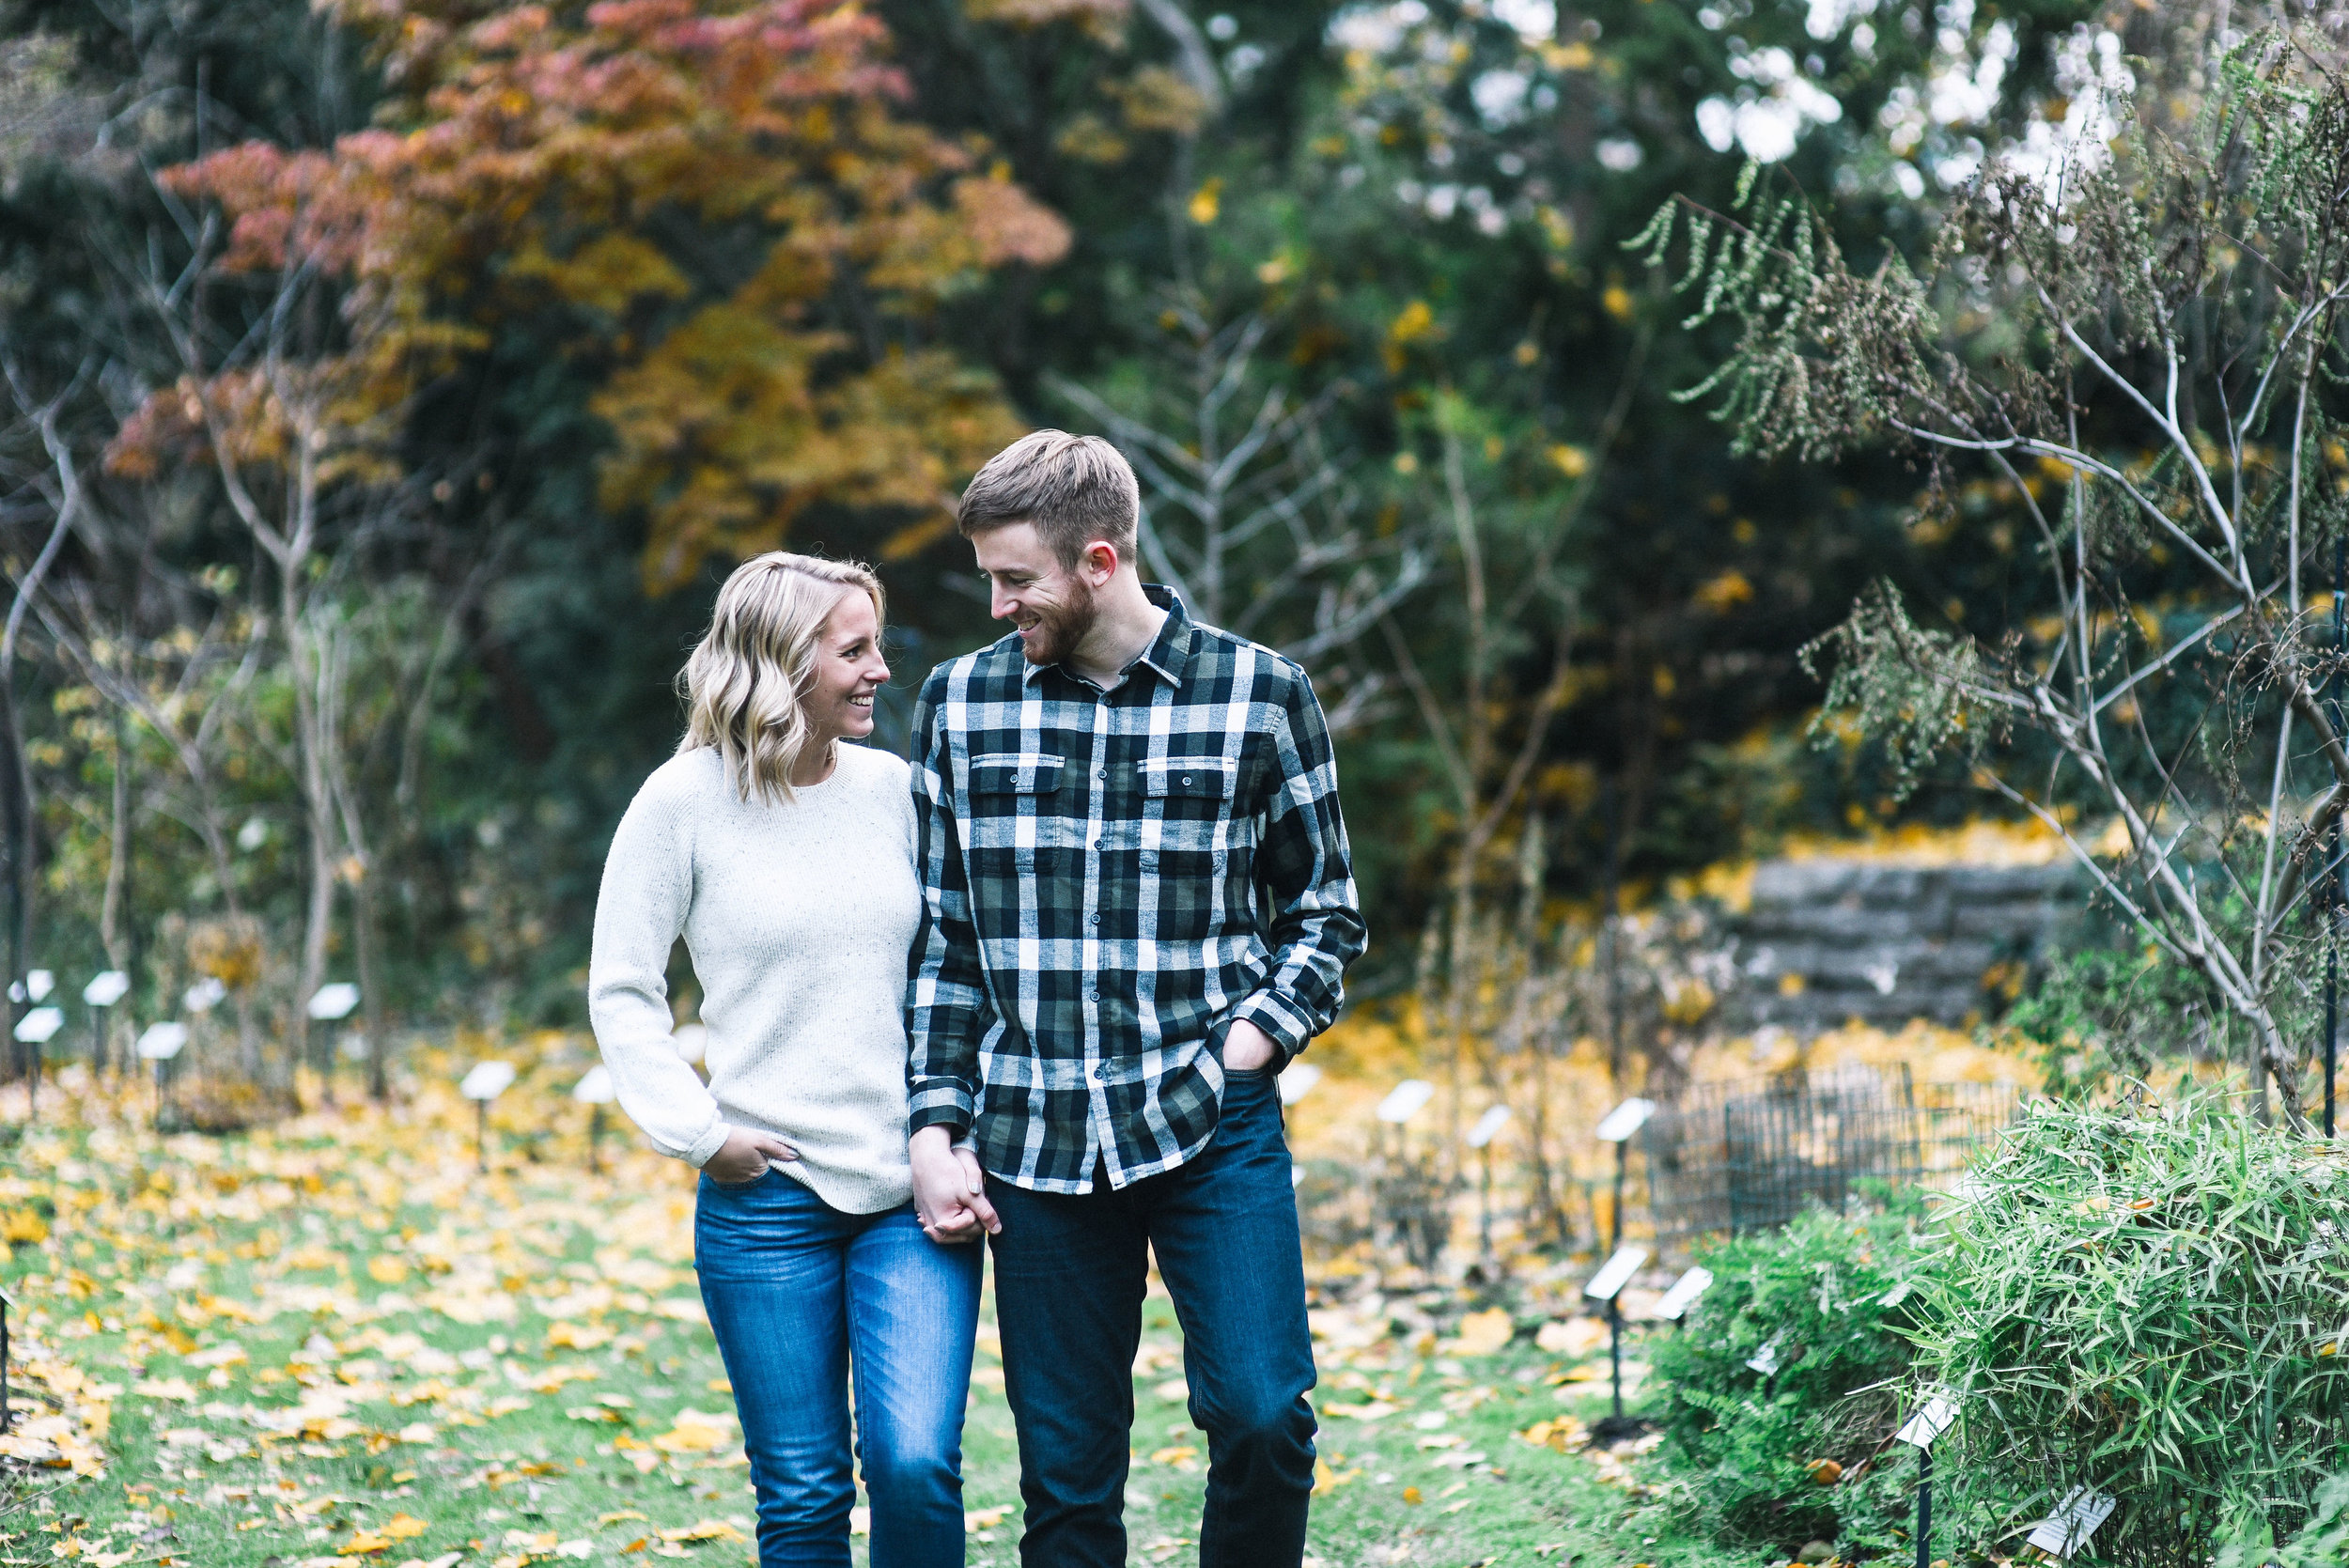 East_Lansing_Engagement_Photos-49.jpg